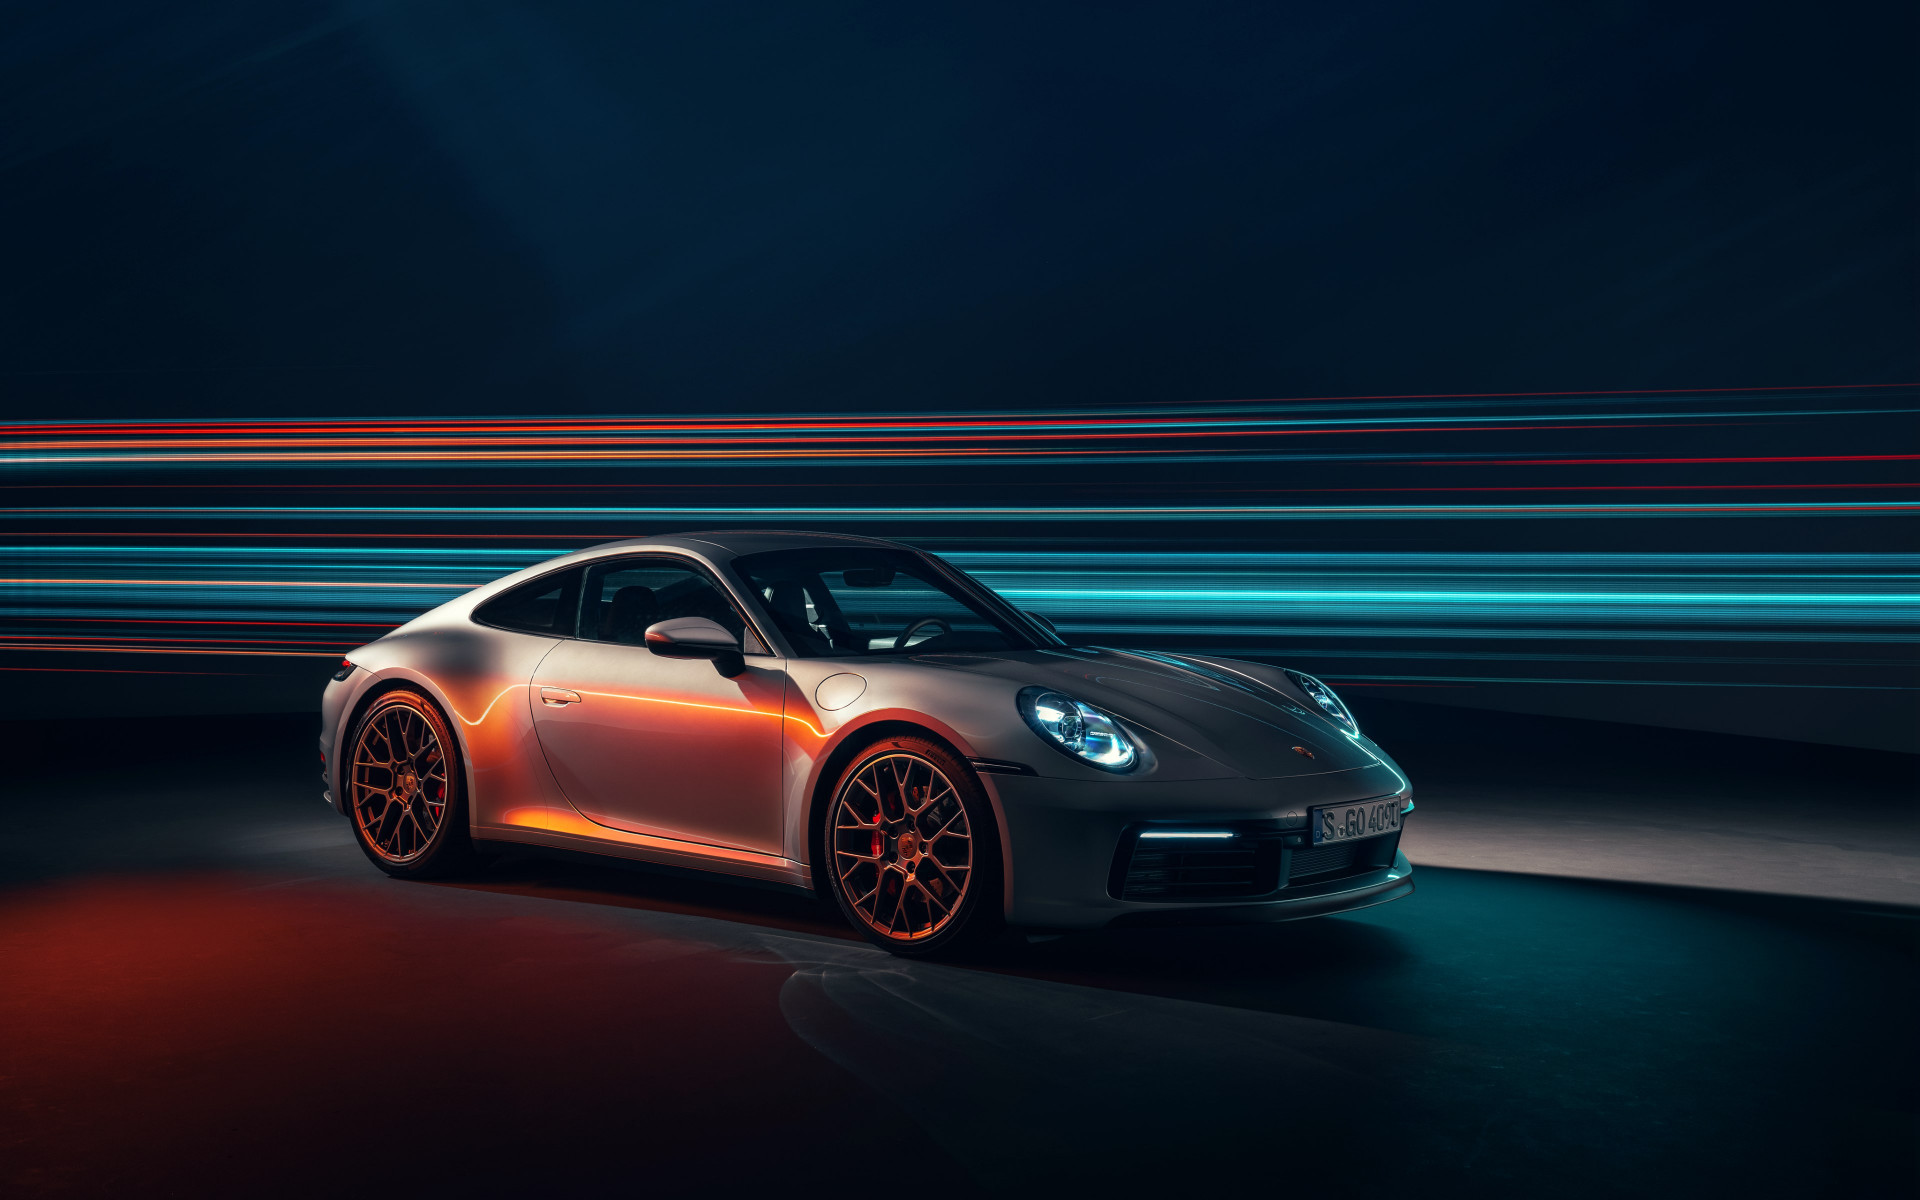 Porsche 911 Carrera 4S wallpaper 1920x1200